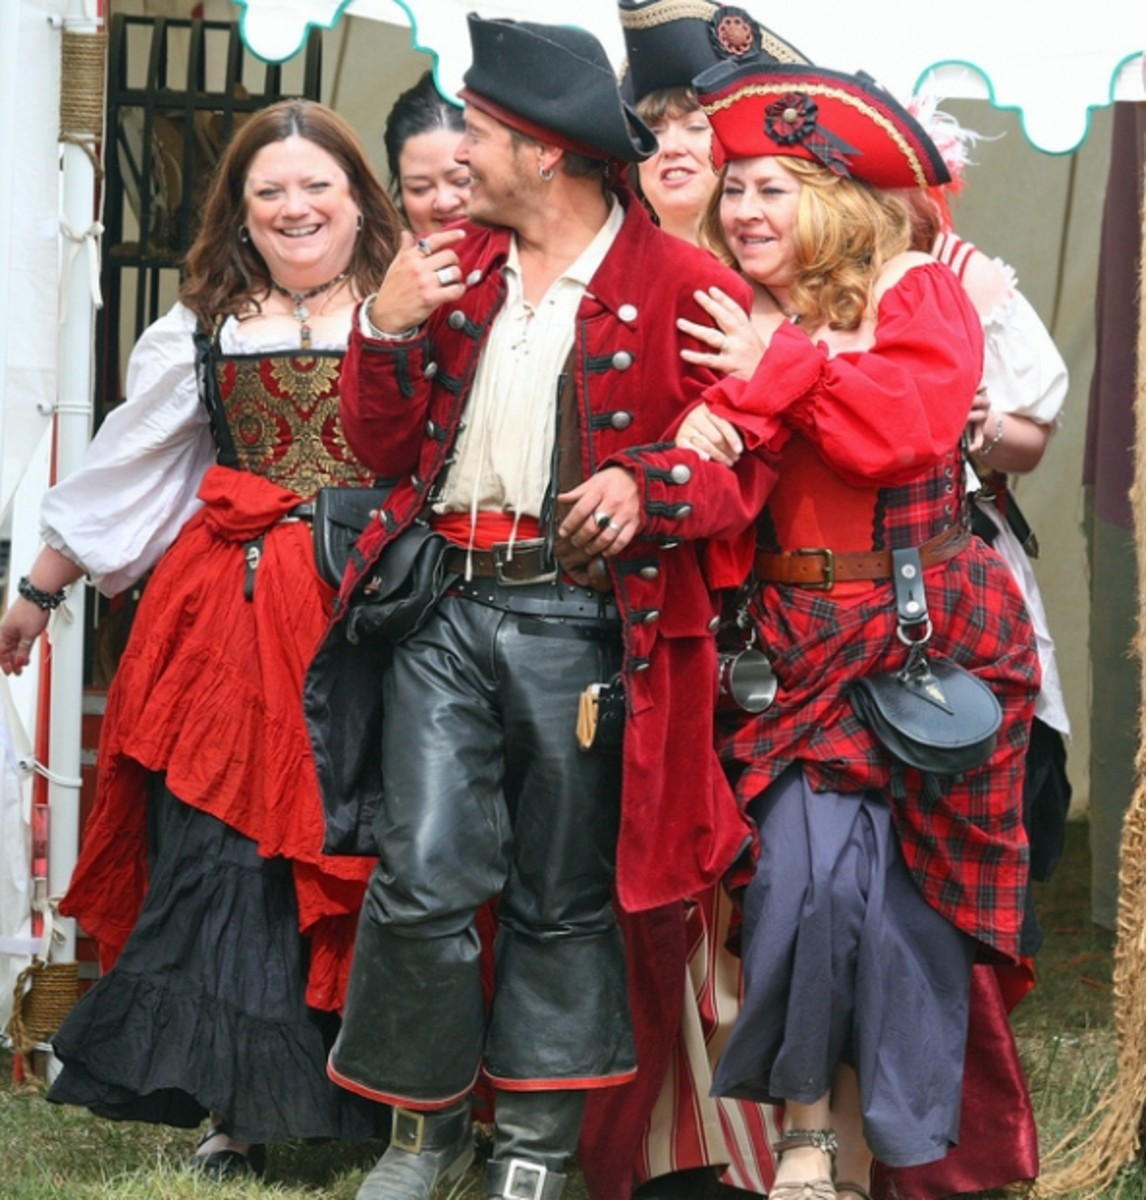 Hen Party Ideas For Small Groups: Group Fancy Dress Costume Ideas